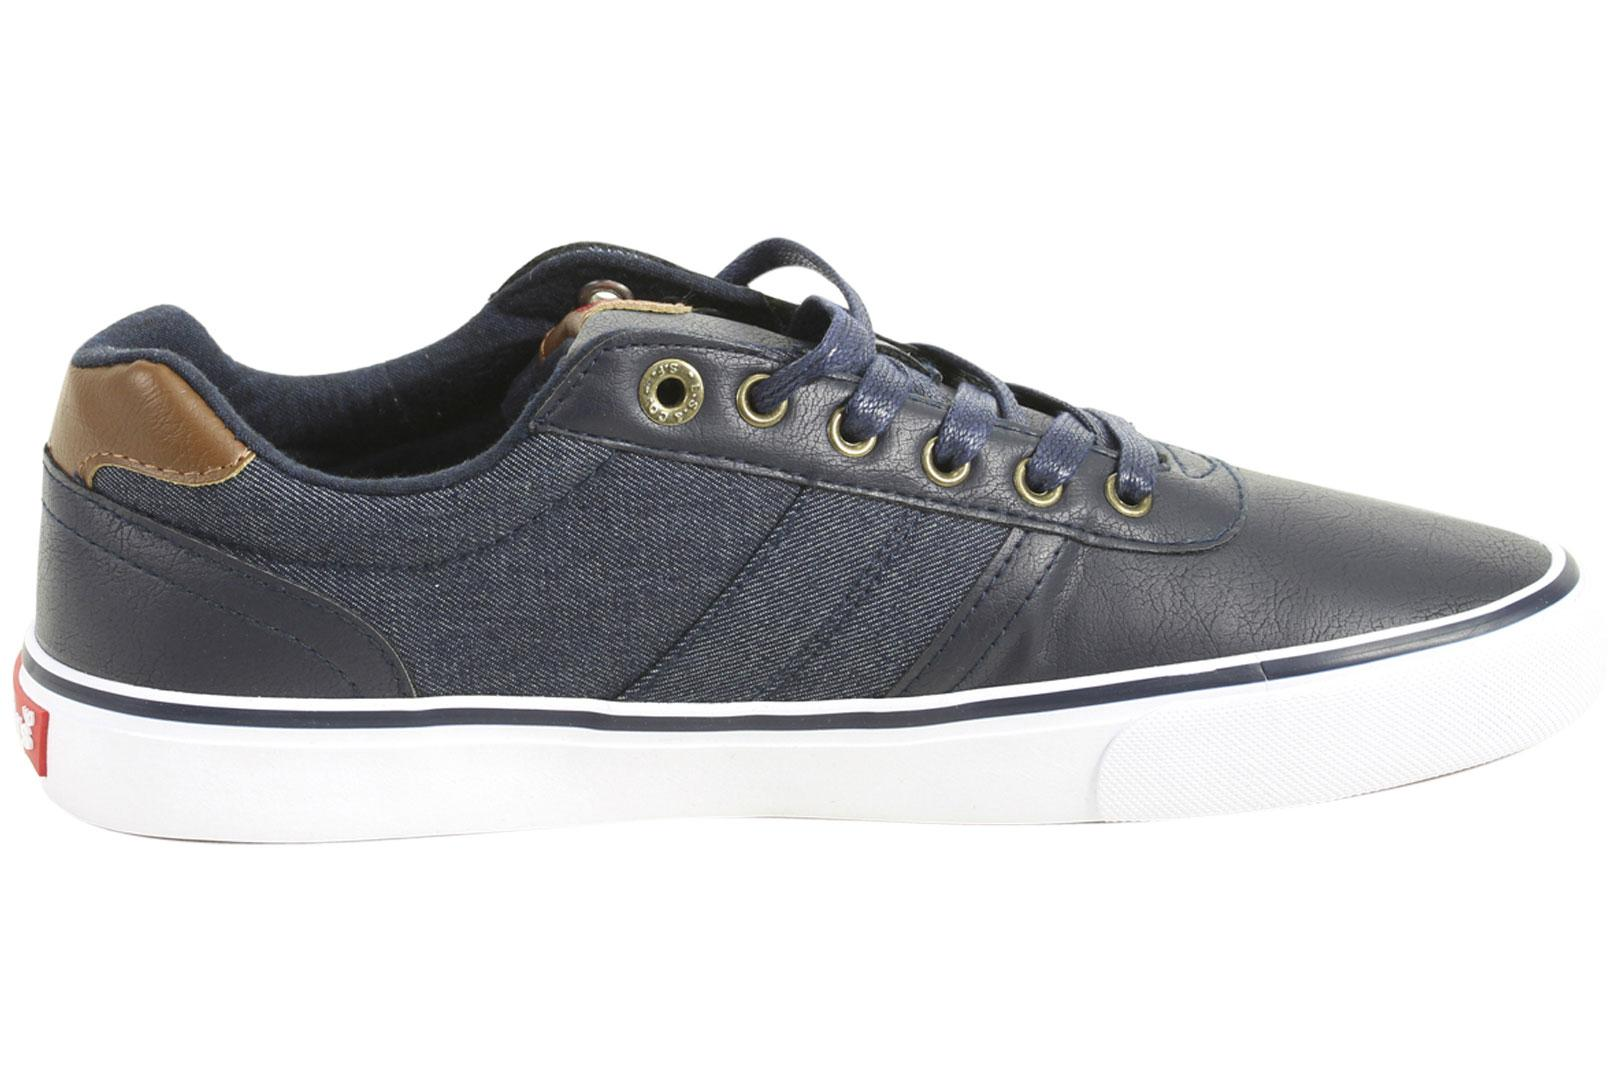 ef41e39fcc25b Levi s Men s Miles Cacti Denim Sneakers Shoes by Levi s